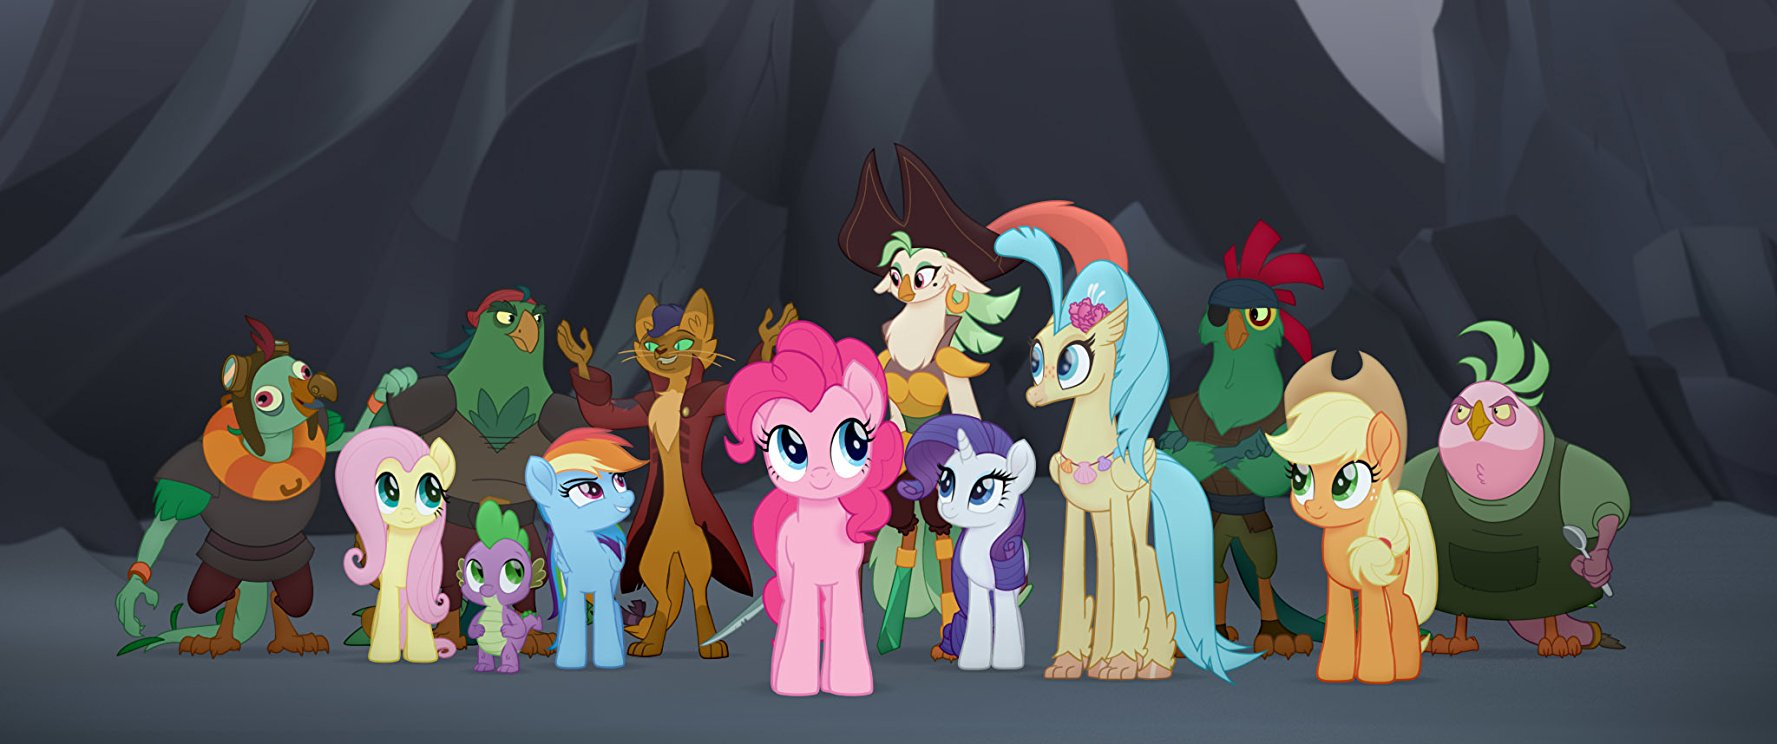 201802/my-little-pony-the-movie.jpg